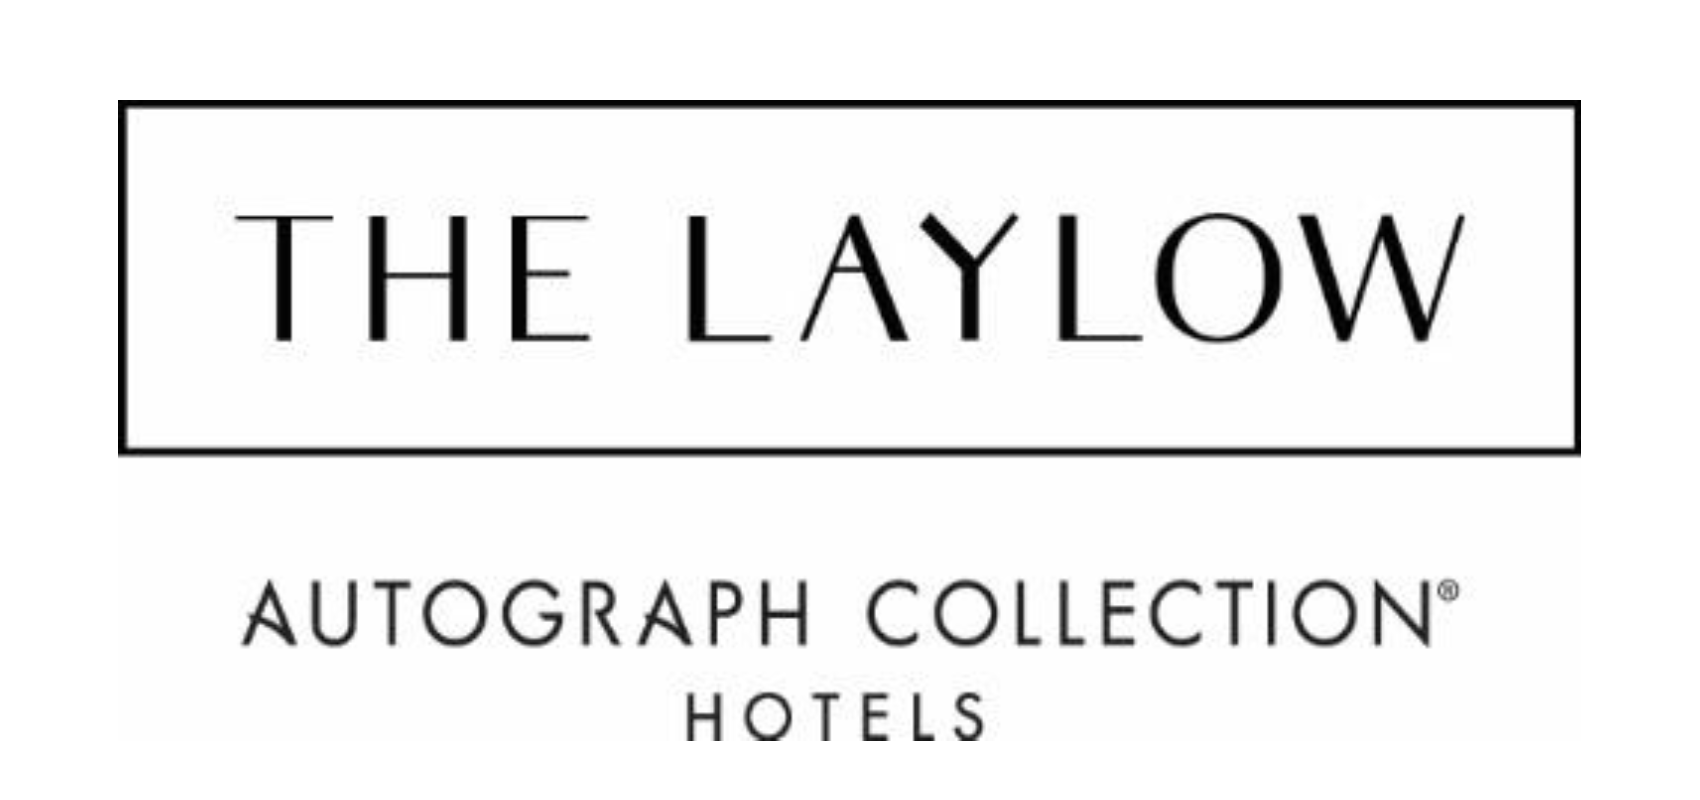 The Laylow logo